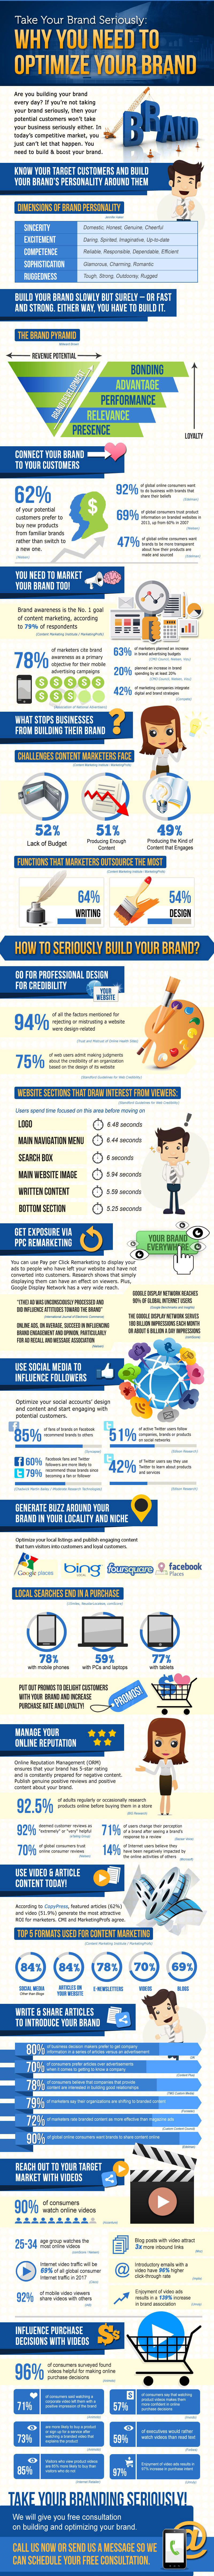 Infographic_9_Tips_for_Serious_Brand_Optimizatio